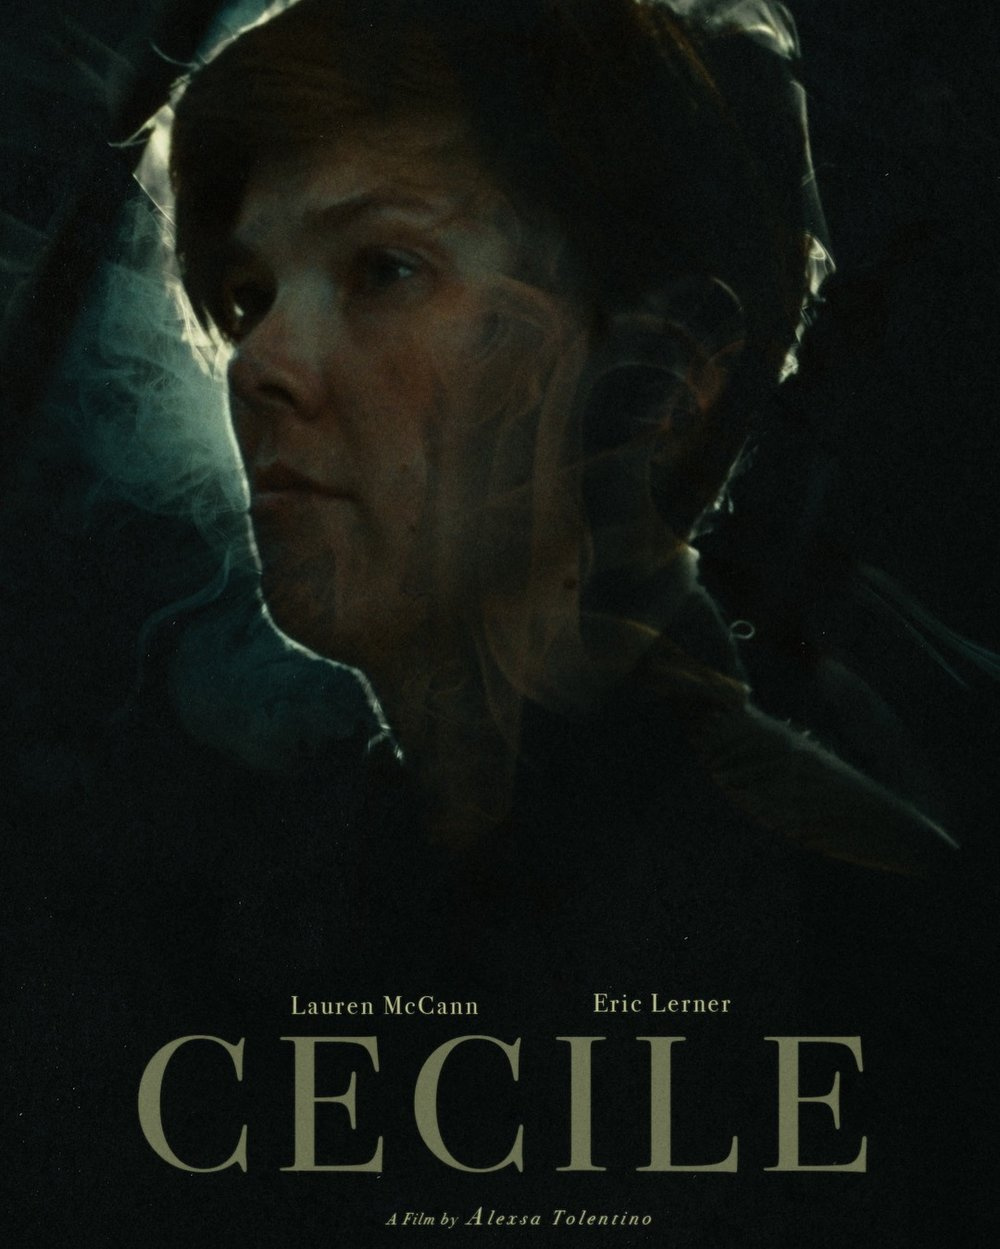 CECILE. - Lauren recently starred in the film CECILE. Watch the trailer below!